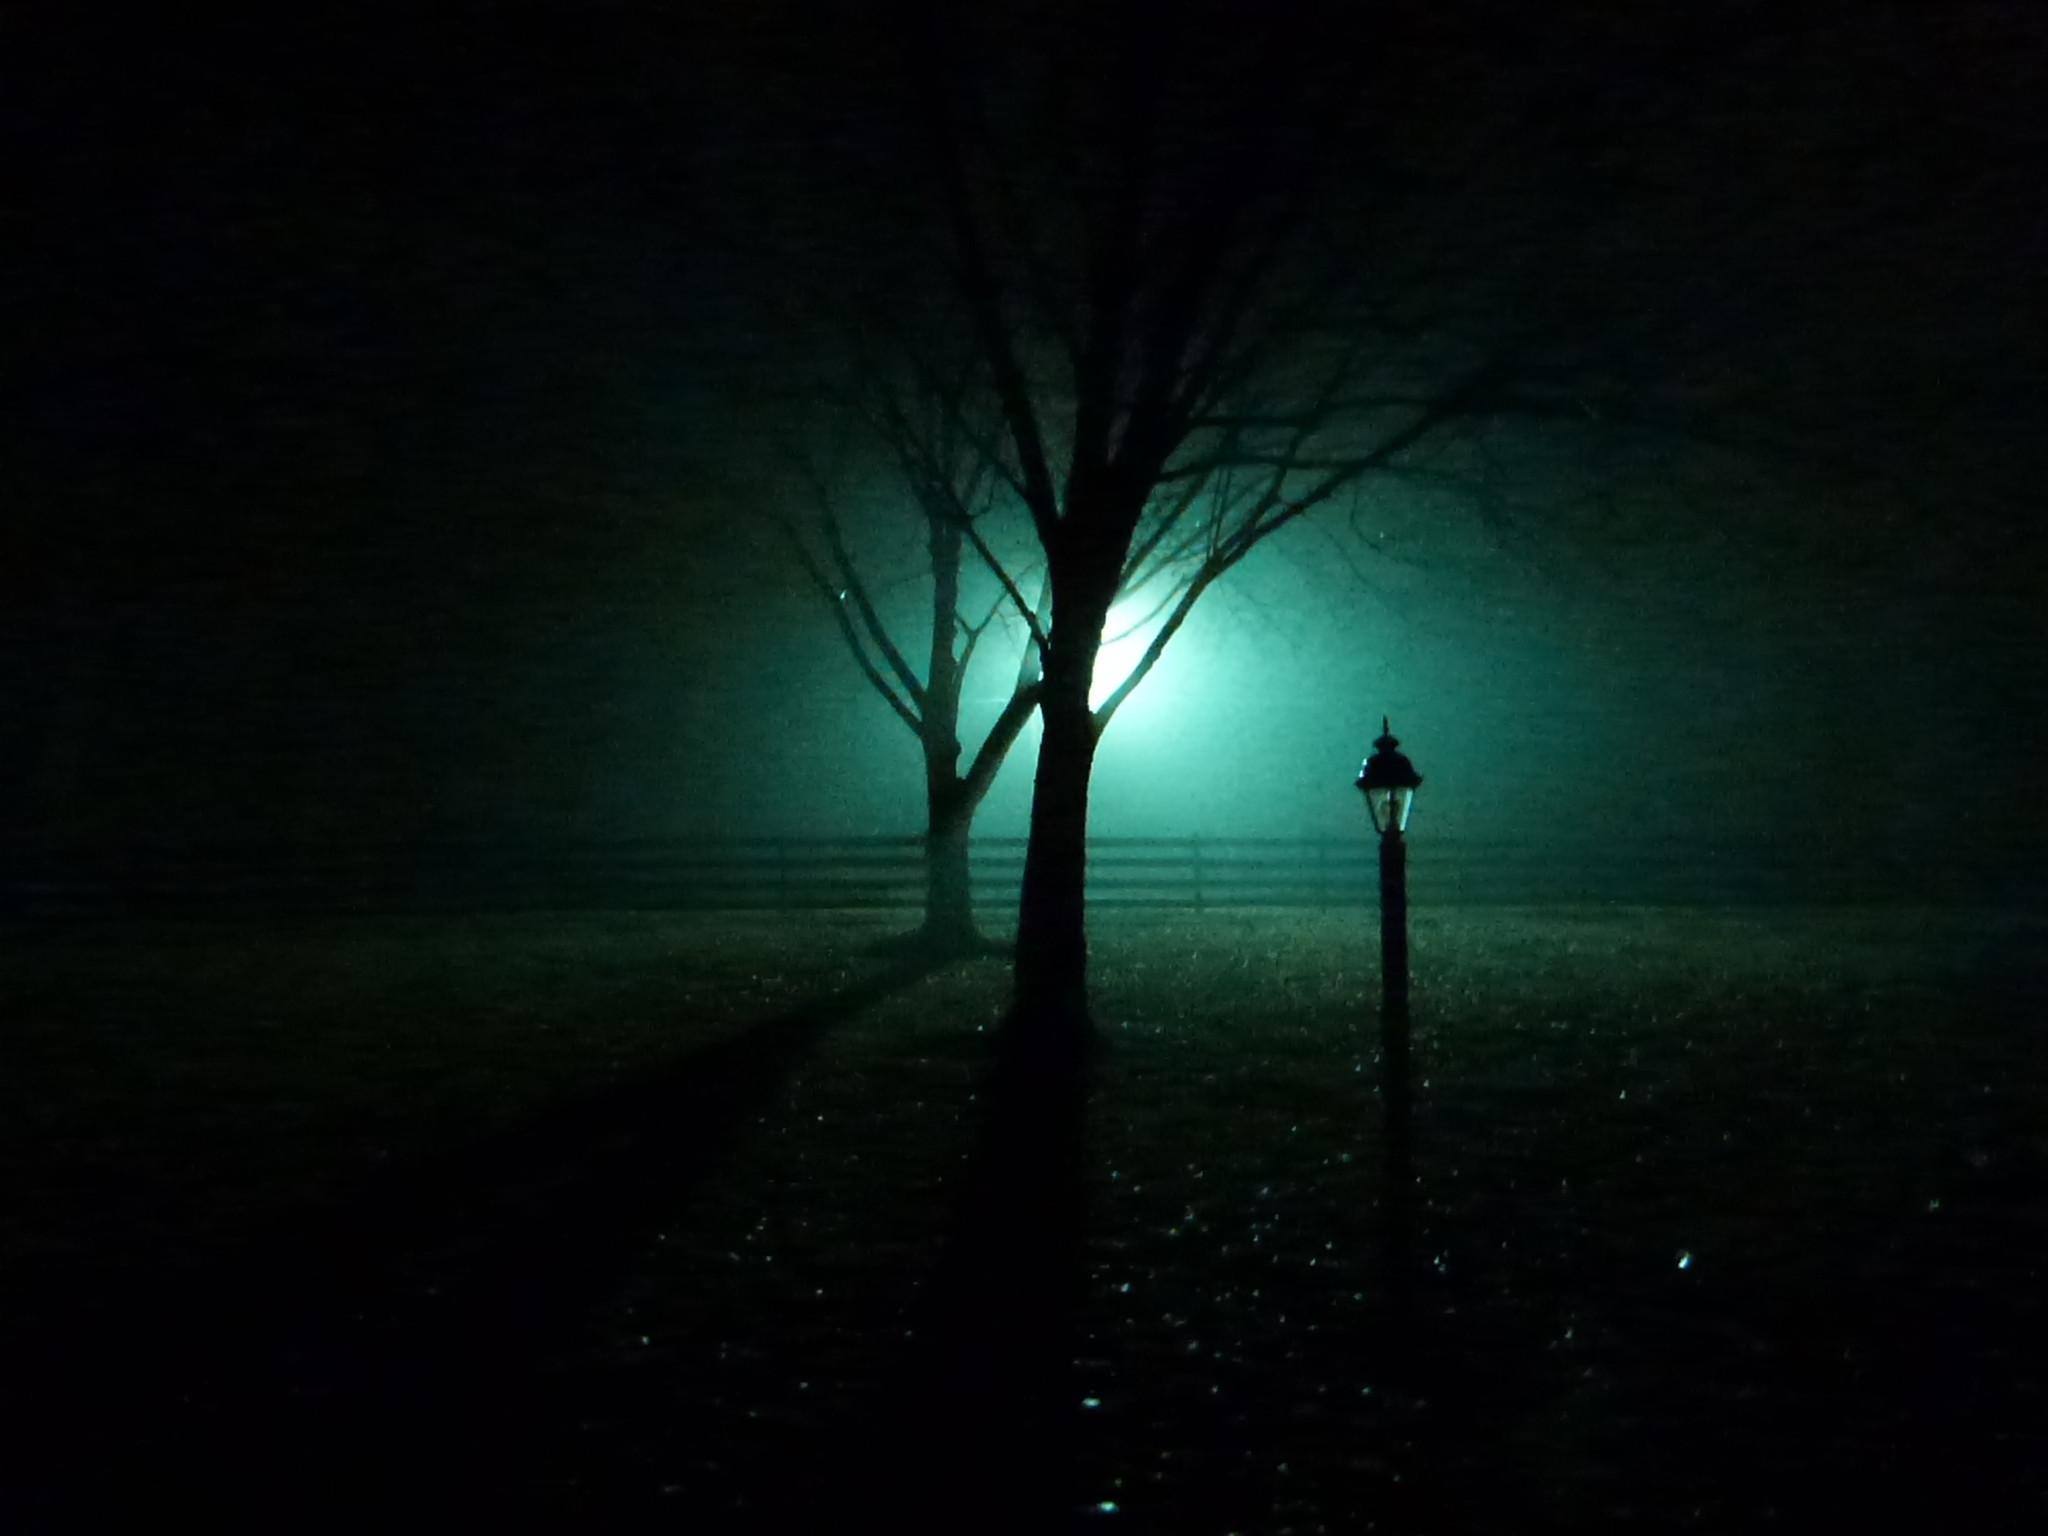 Foggy Night [2048x1536] : wallpapers